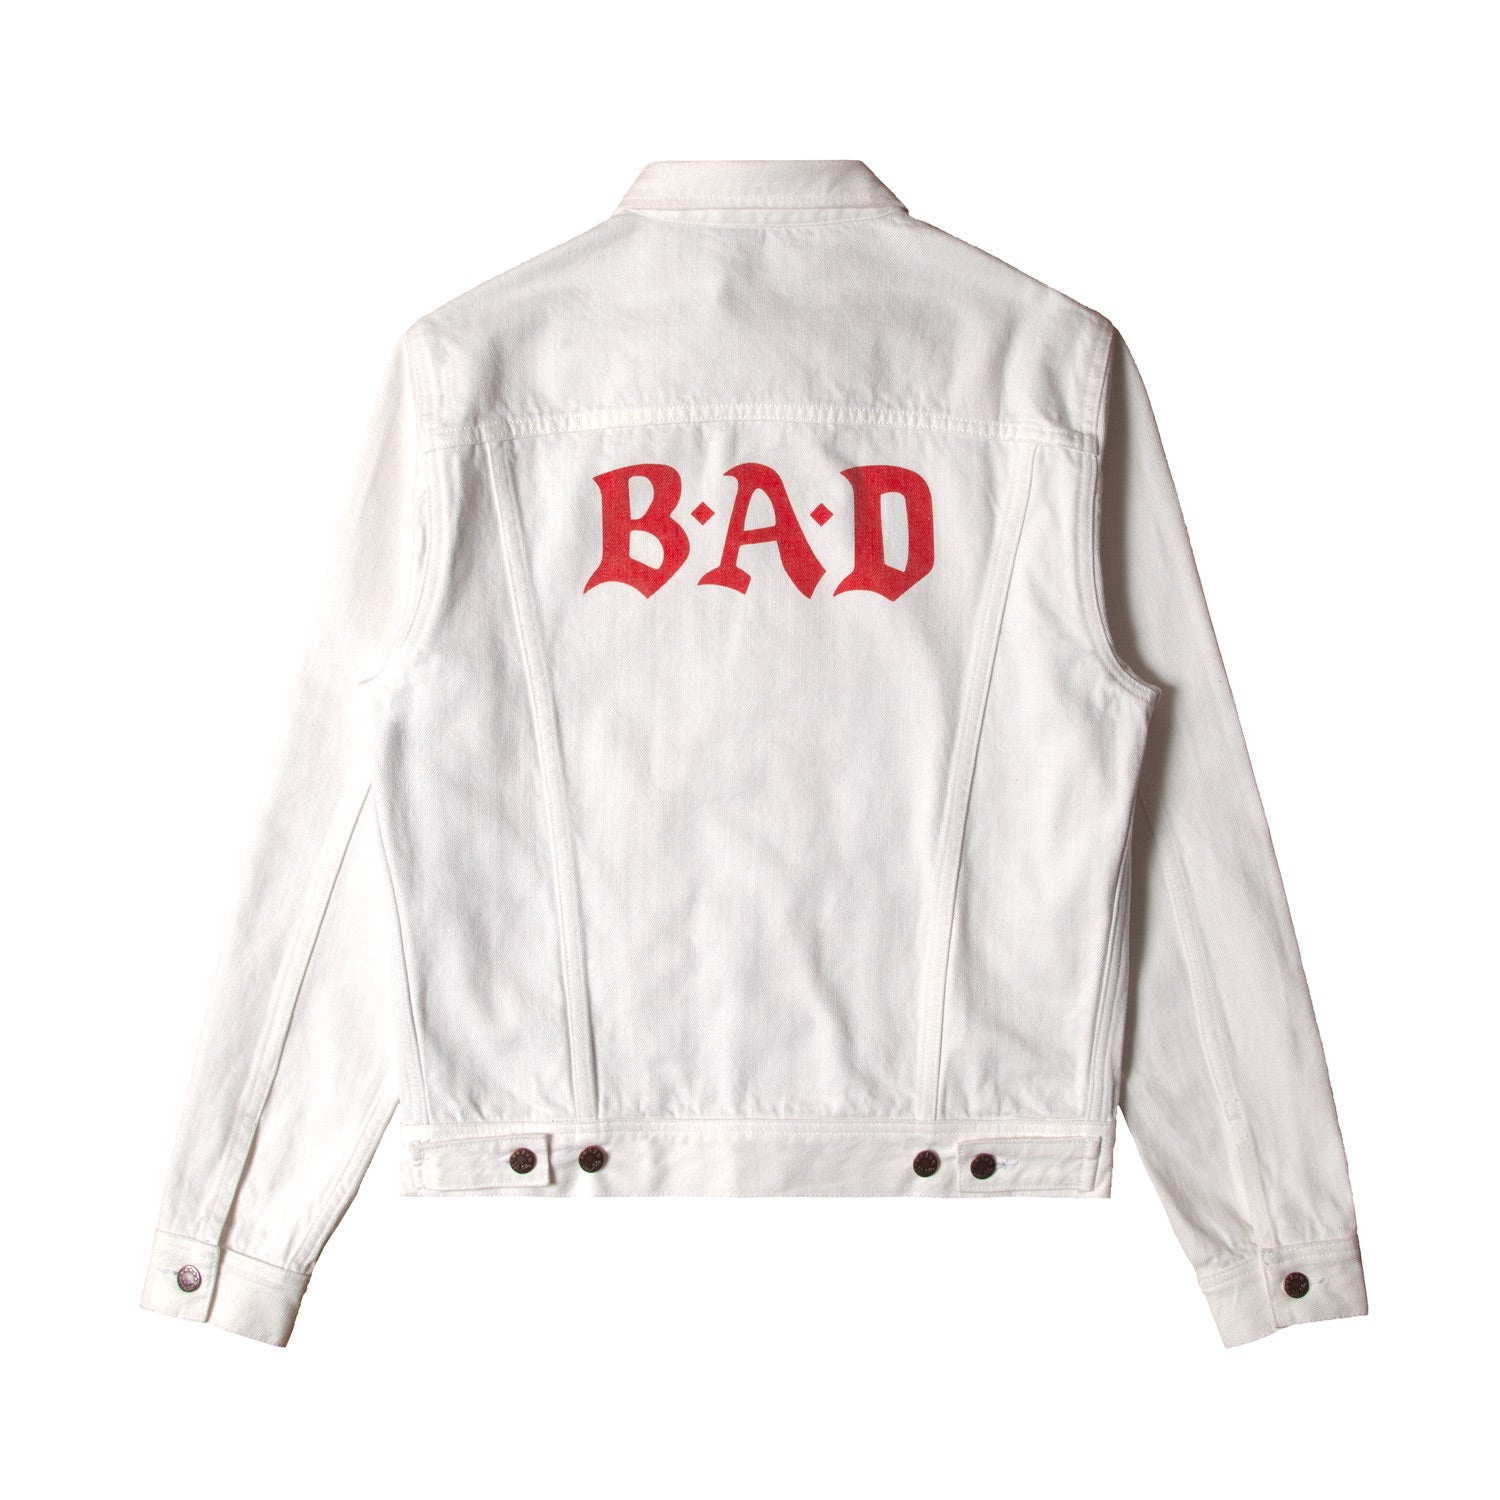 B.A.D Denim Jacket